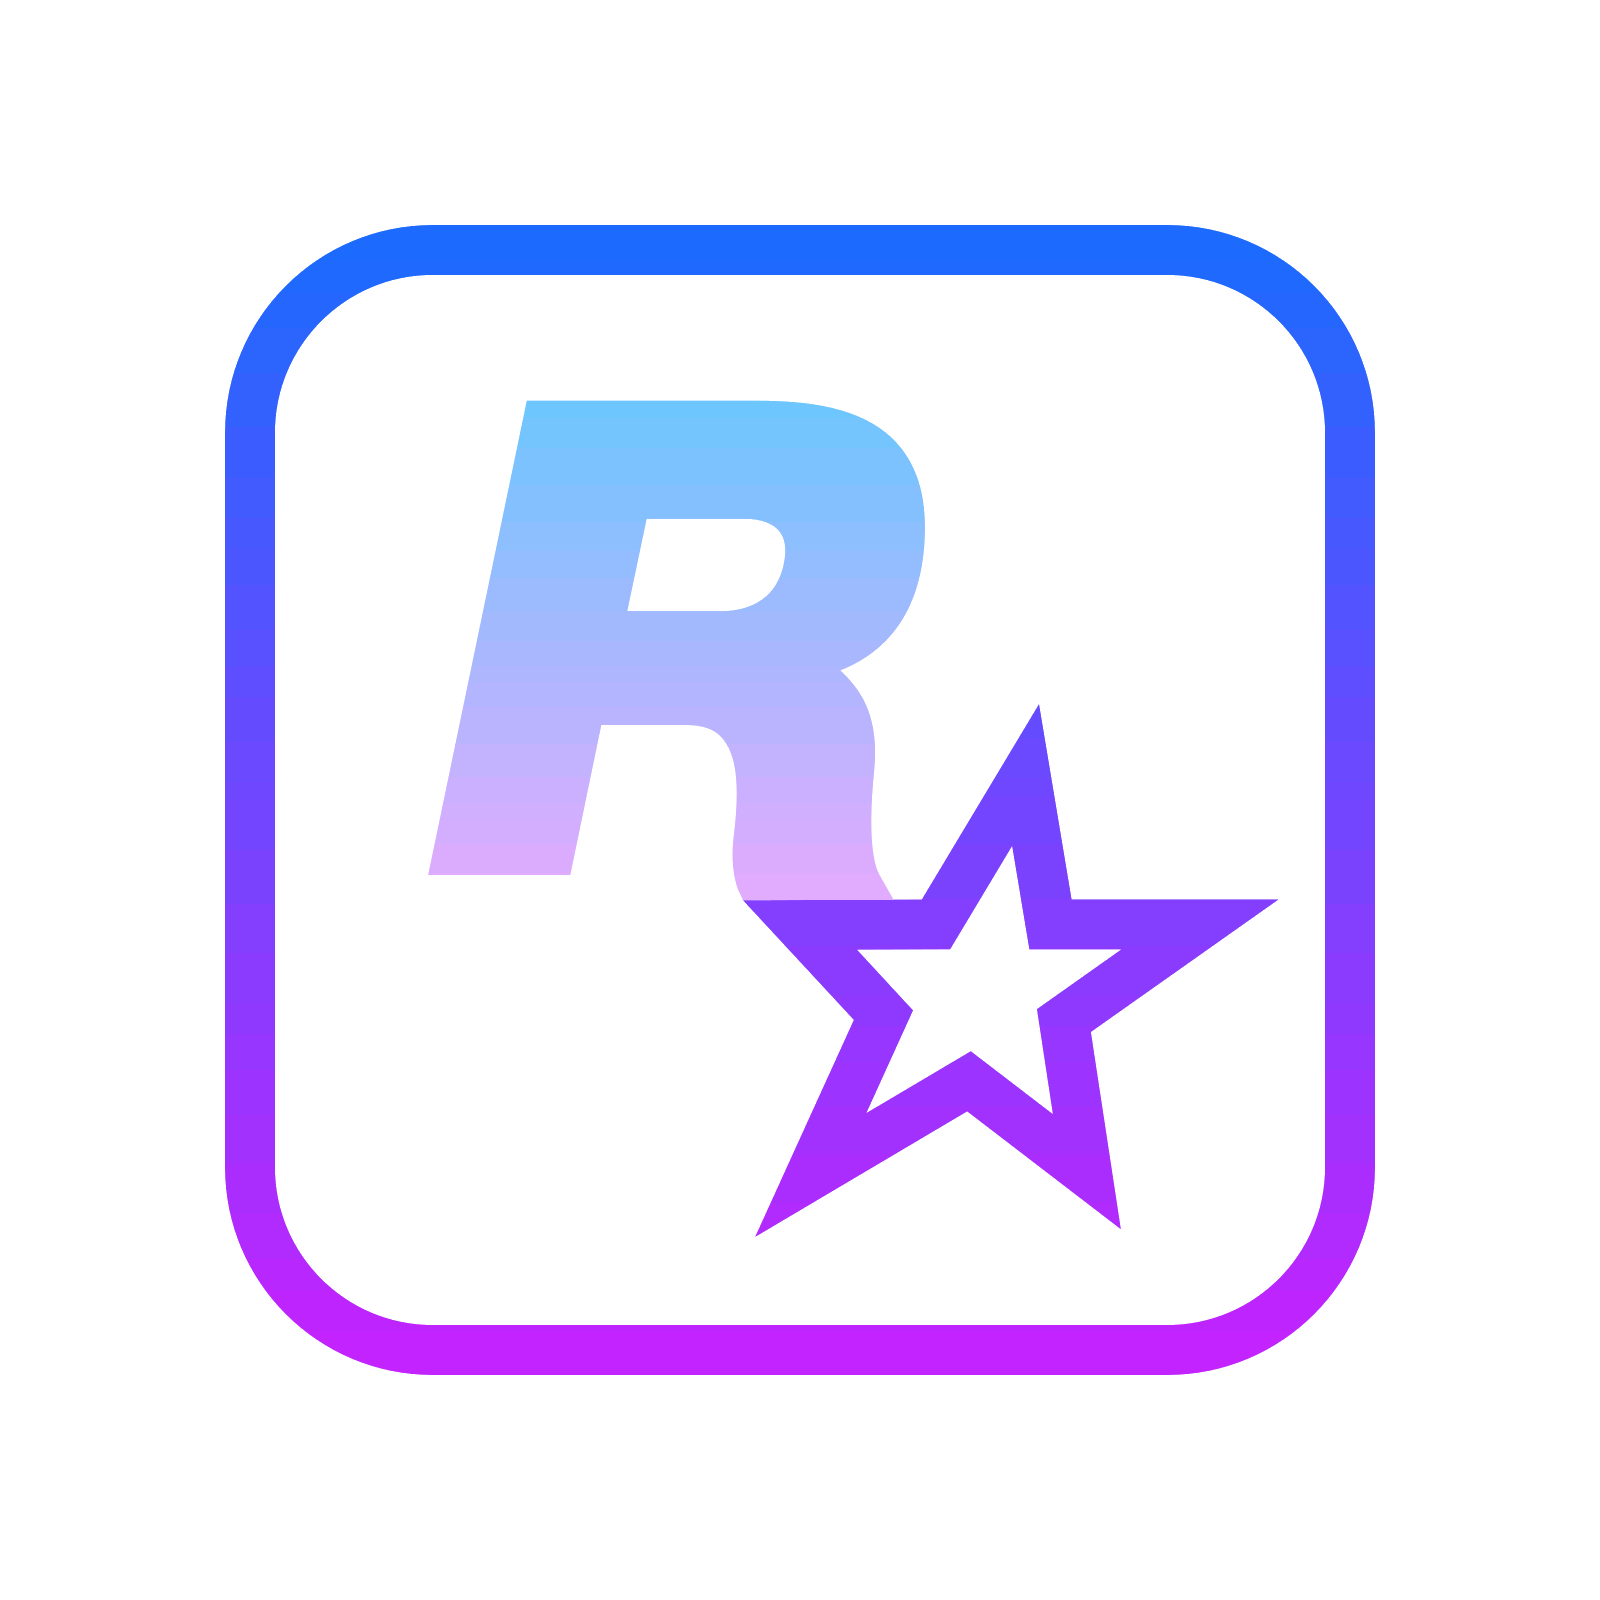 Rockstar games logo png. Icon free download and